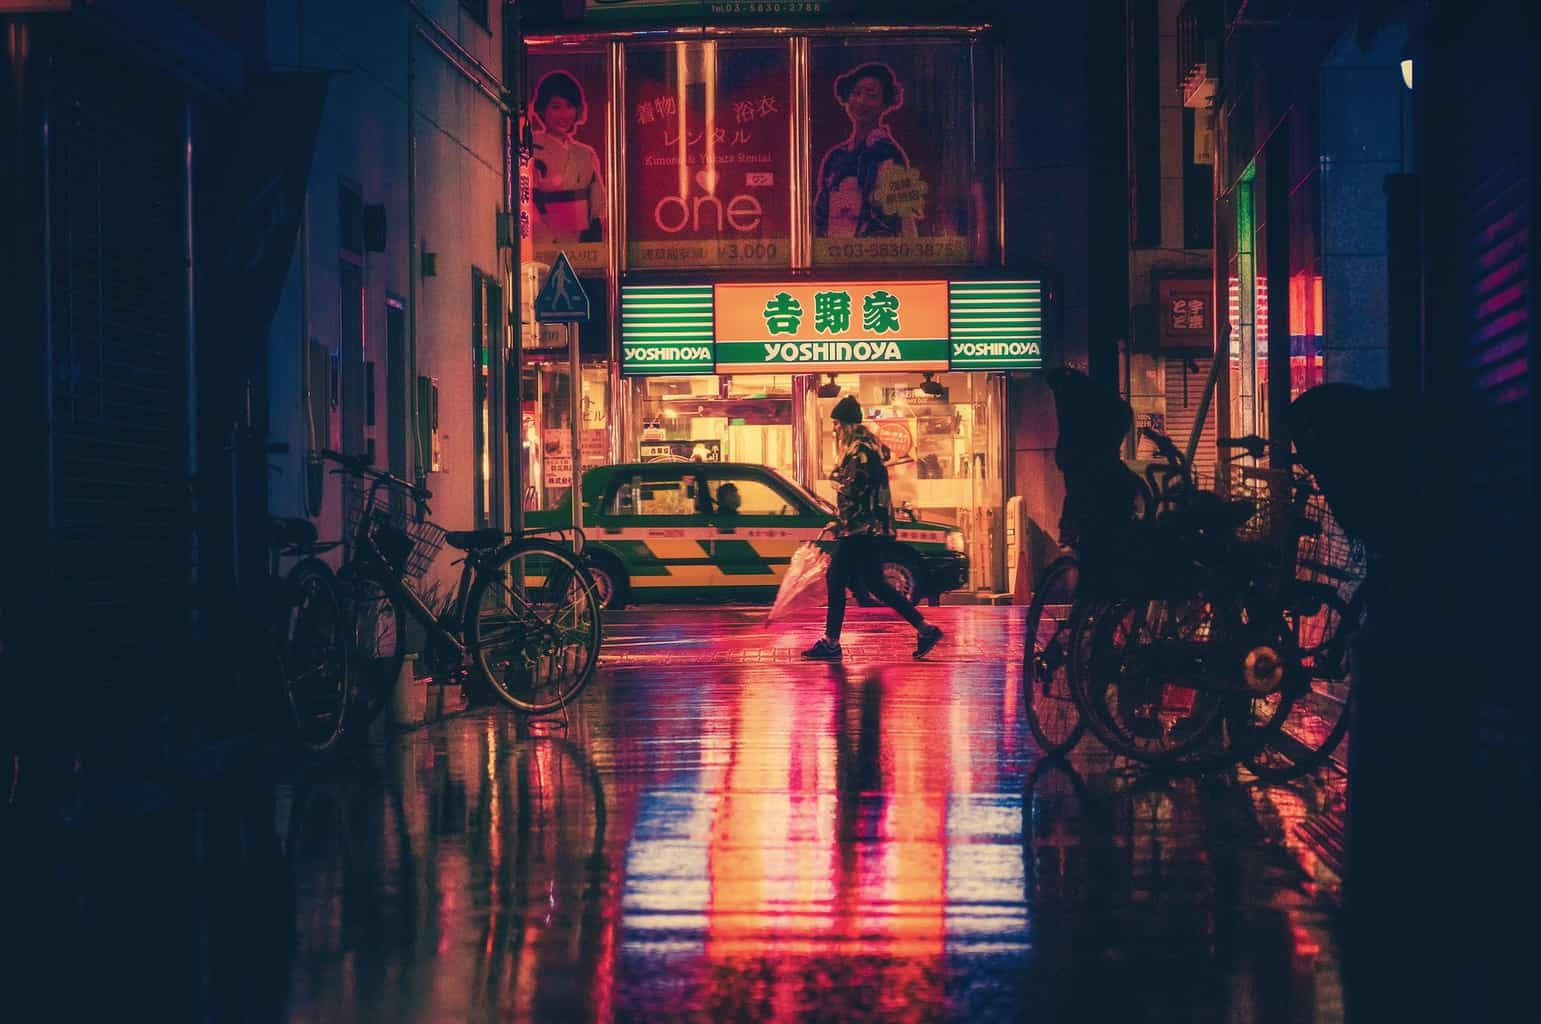 Japan at night with red lights reflecting on road and lady walking past with bikes on either side